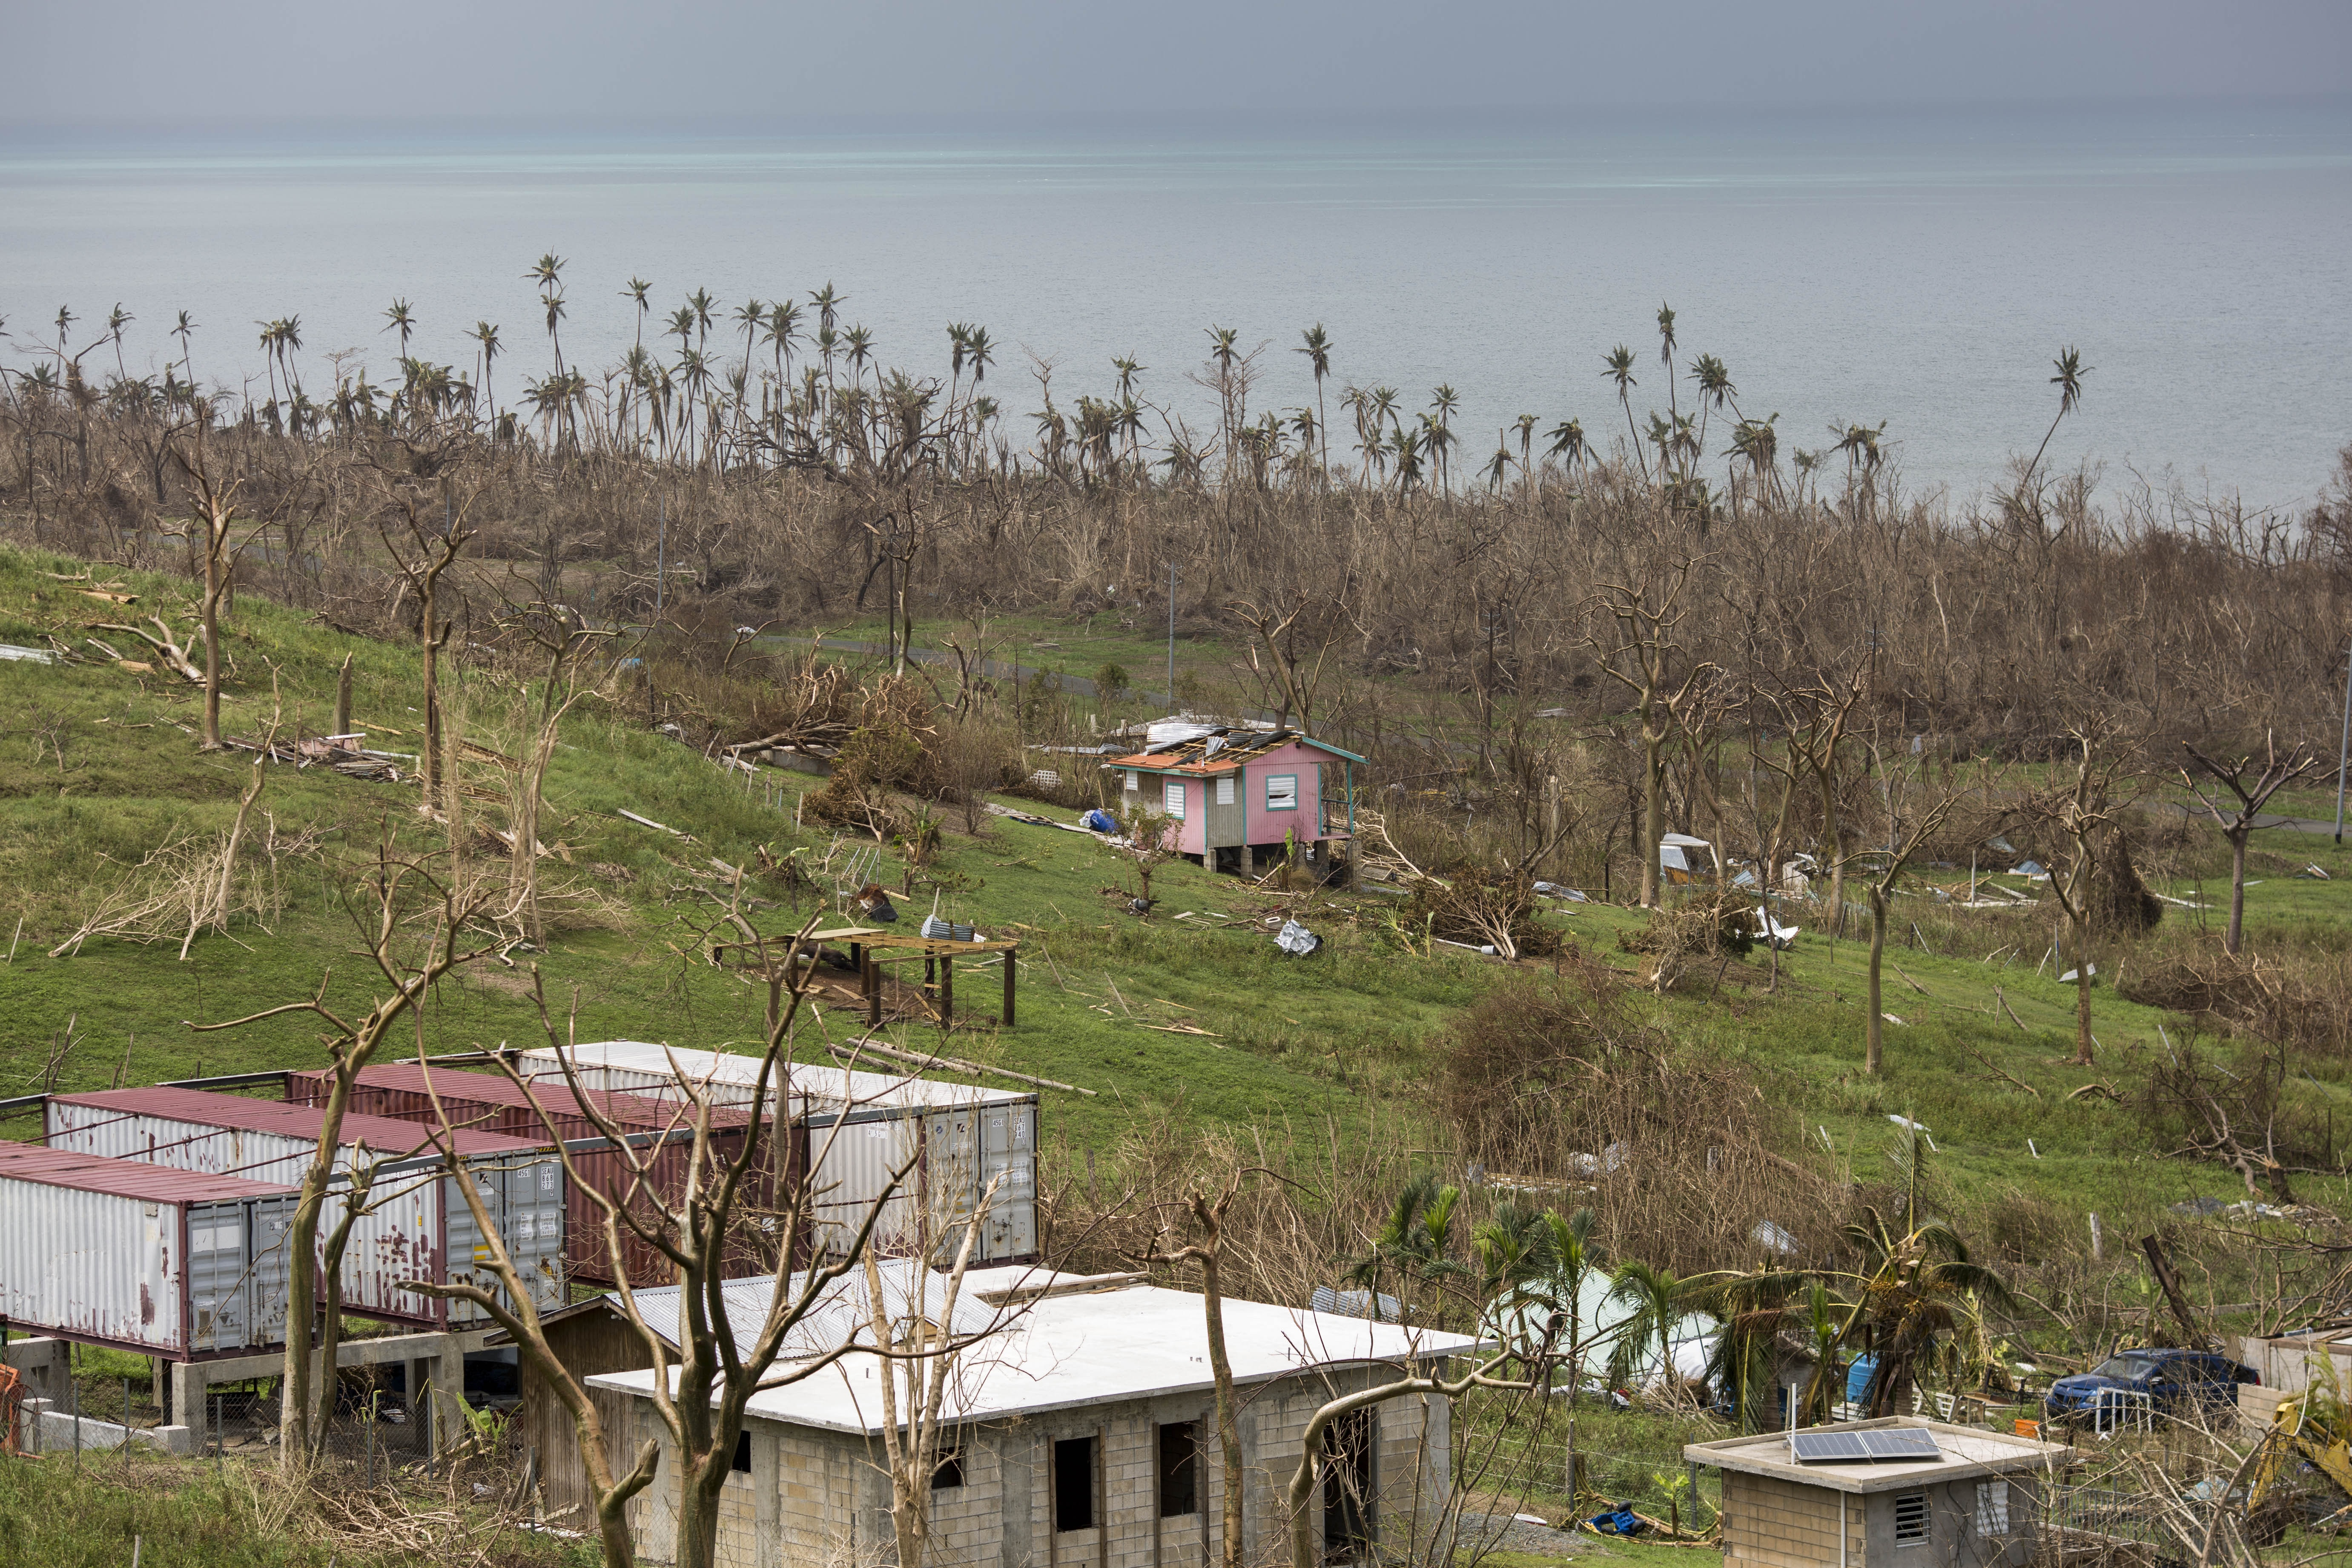 VIEQUES PUERTO RICO  SEPTEMBER 25: The island of Vieques, in the east side of the island, got affected by strong winds produced by Hurricane Maria. More than a week after the event, recovery is slow. Hurricane Maria passed through Puerto Rico leaving behind a path of destruction across the national territory. (Photo by Dennis M. Rivera Pichardo for The Washington Post via Getty Images)